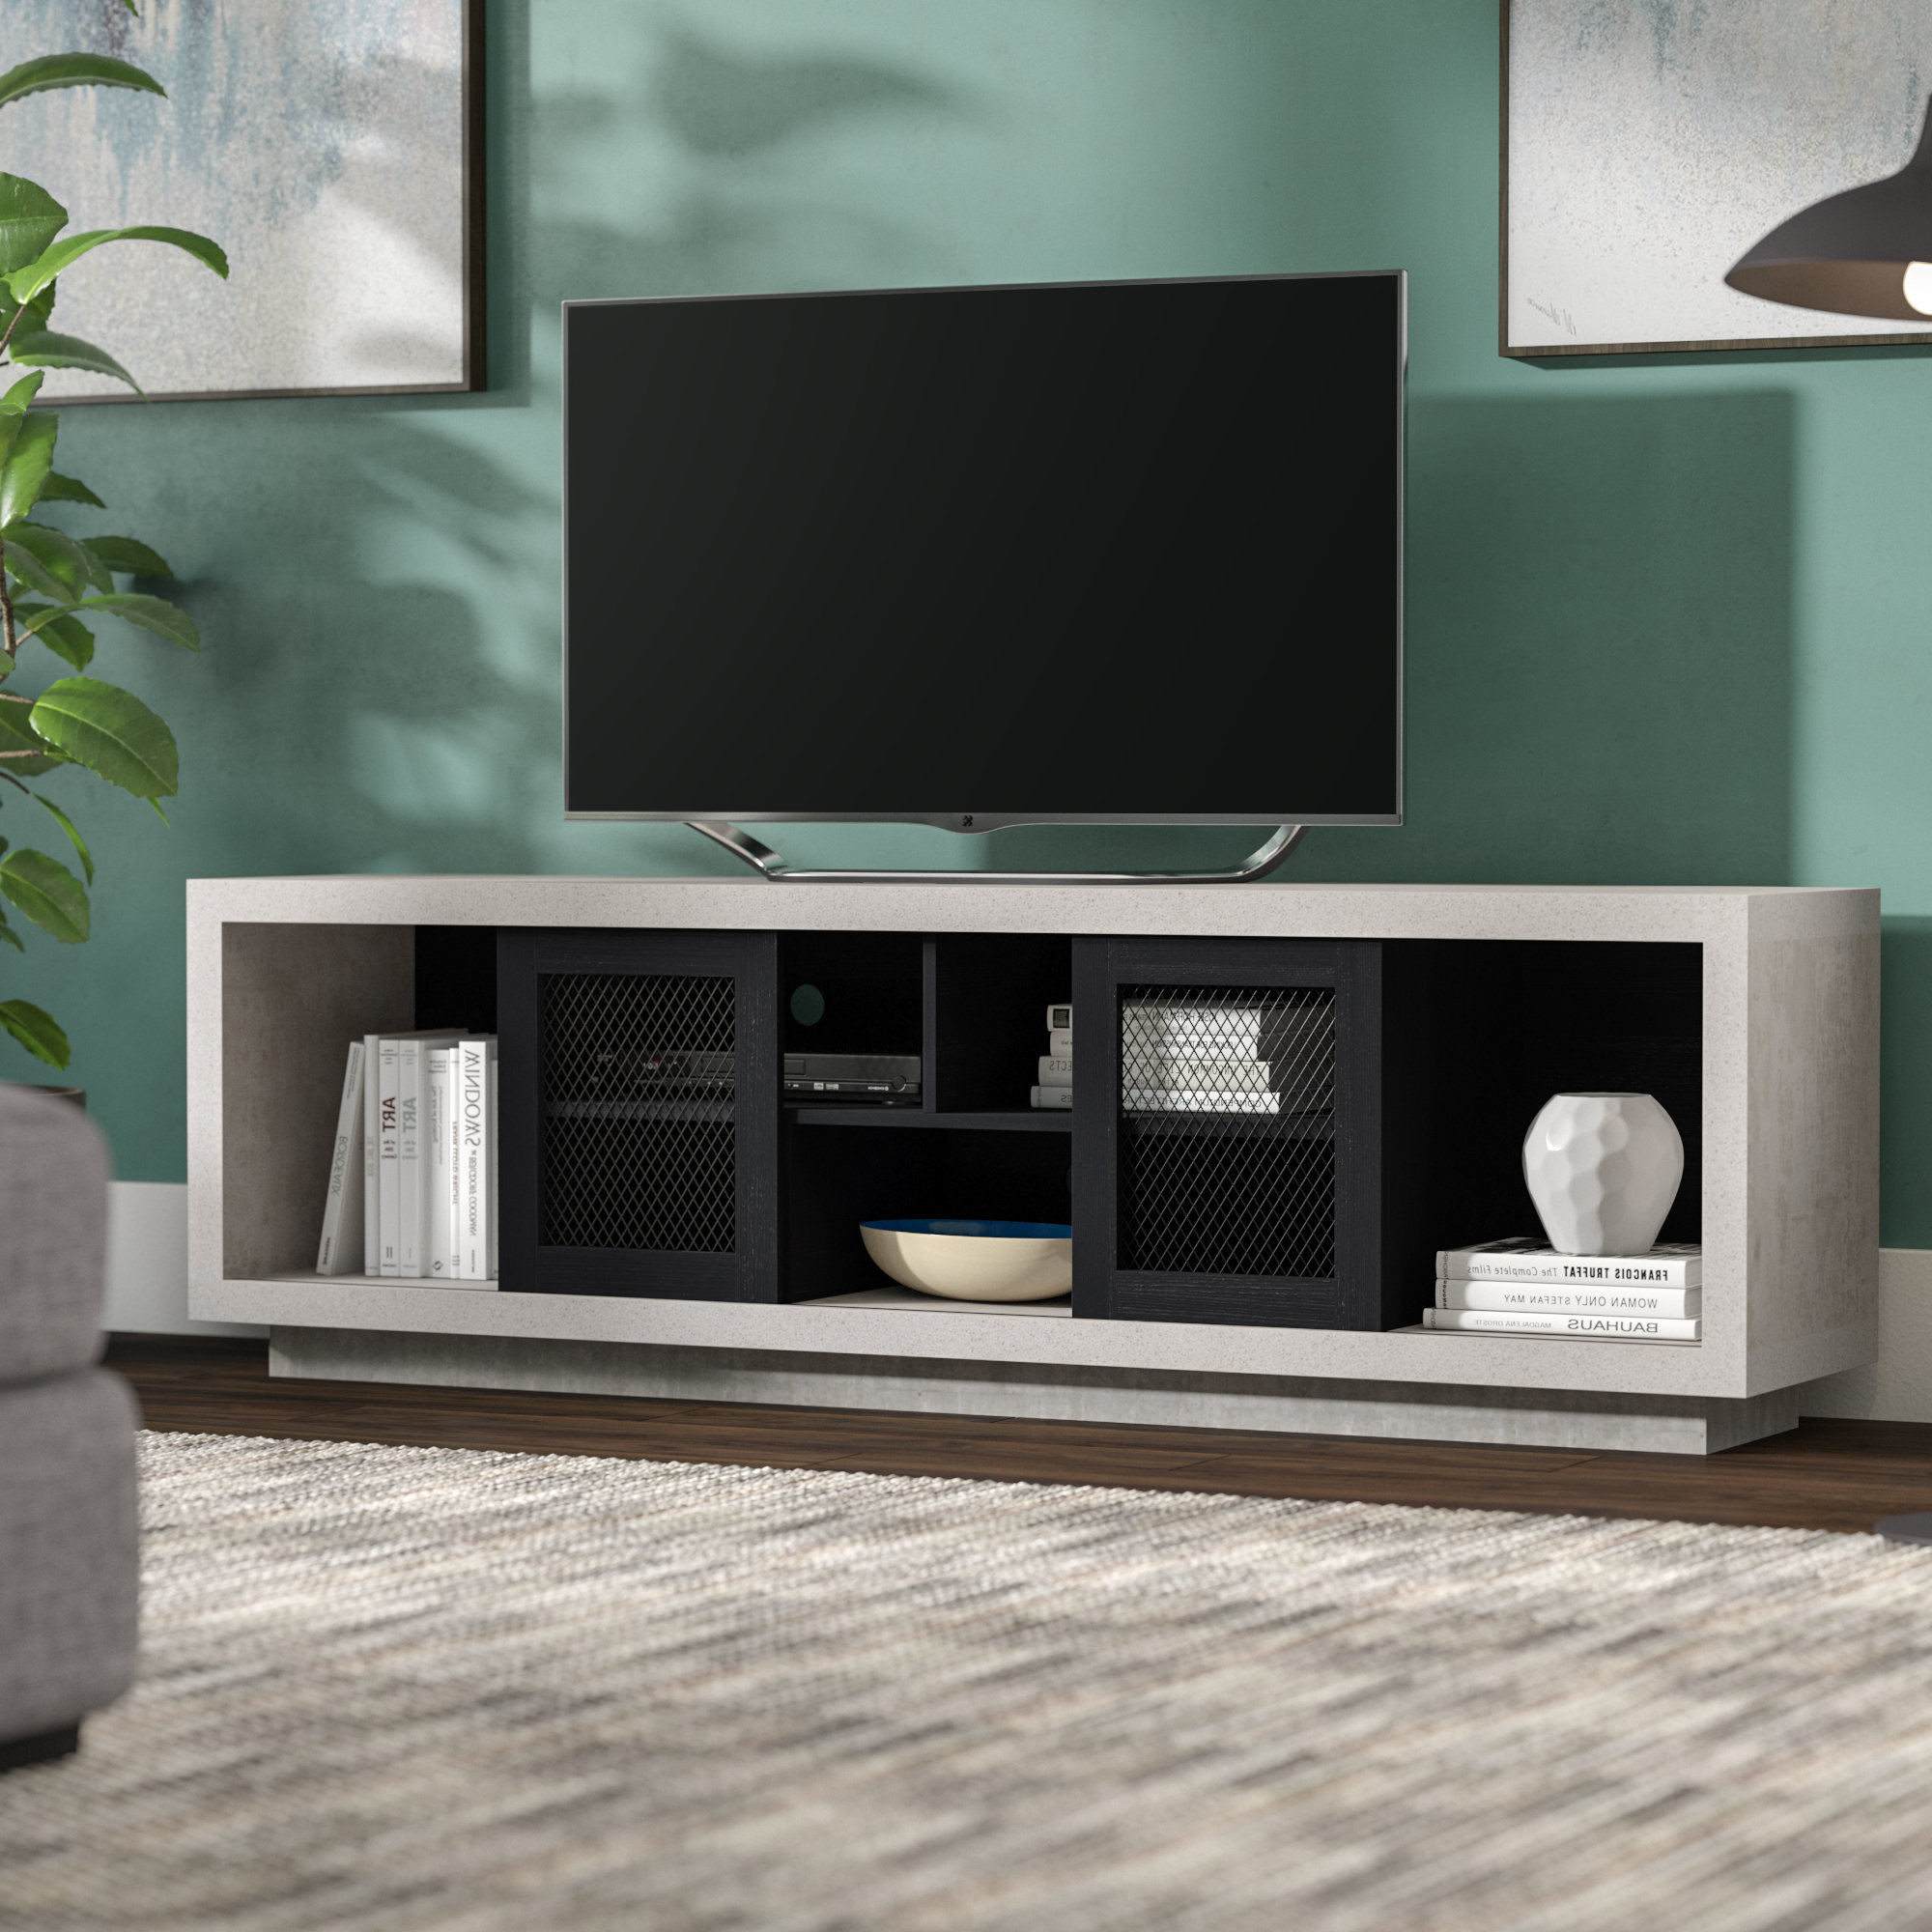 Best And Newest Brayden Studio Cioffi Industrial Tv Stand For Tvs Up To 70 For Industrial Tv Stands (View 2 of 20)